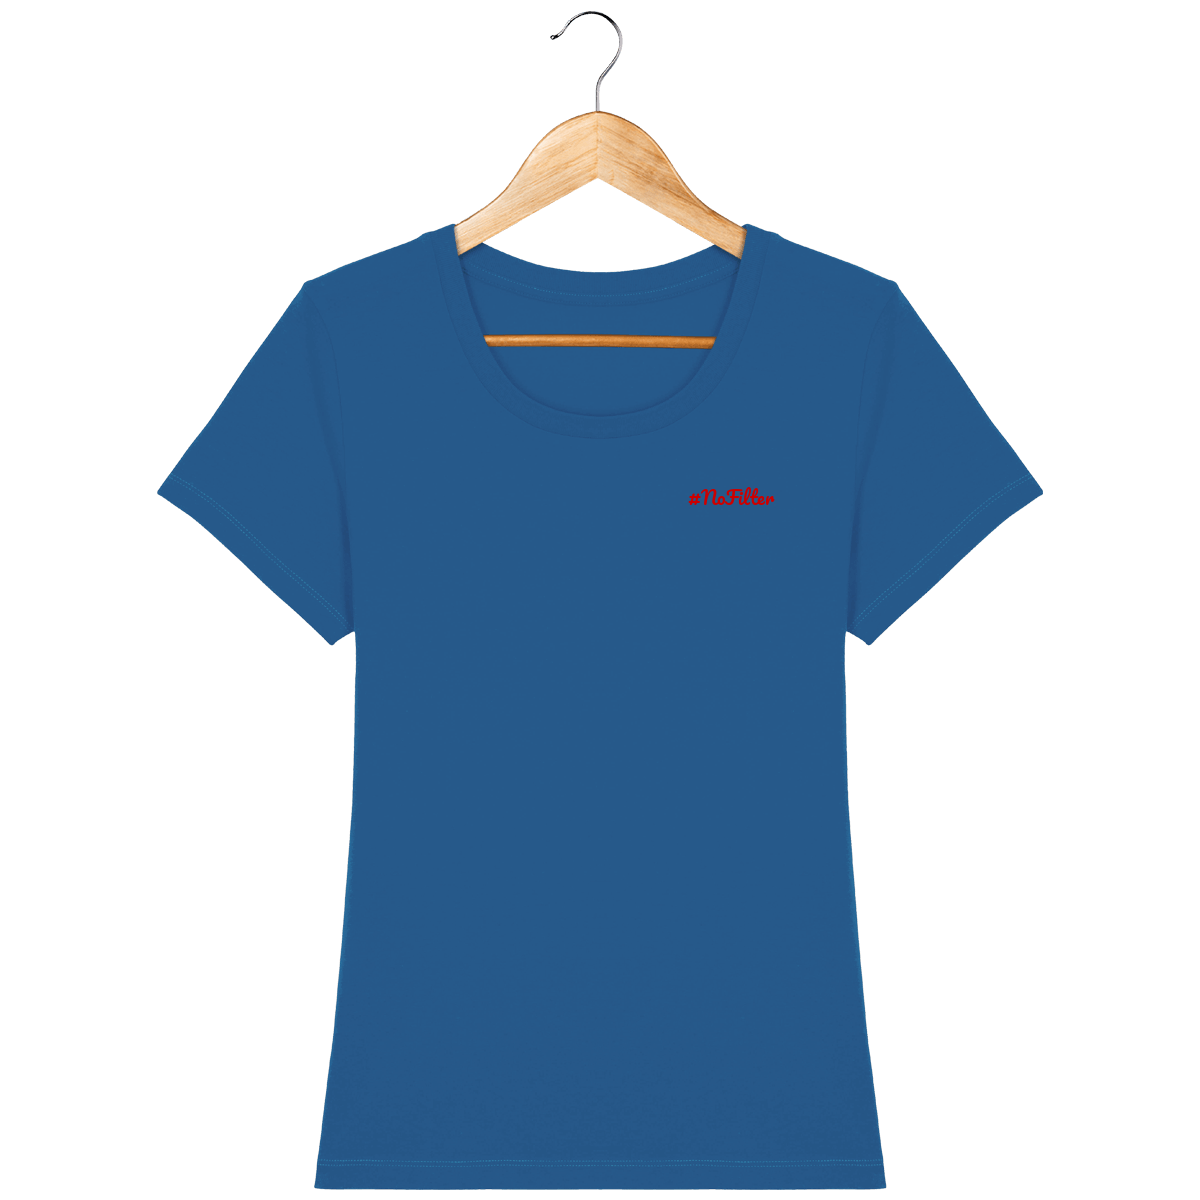 t-shirt-bio-brode-nofilter-black-red_royal-blue_face